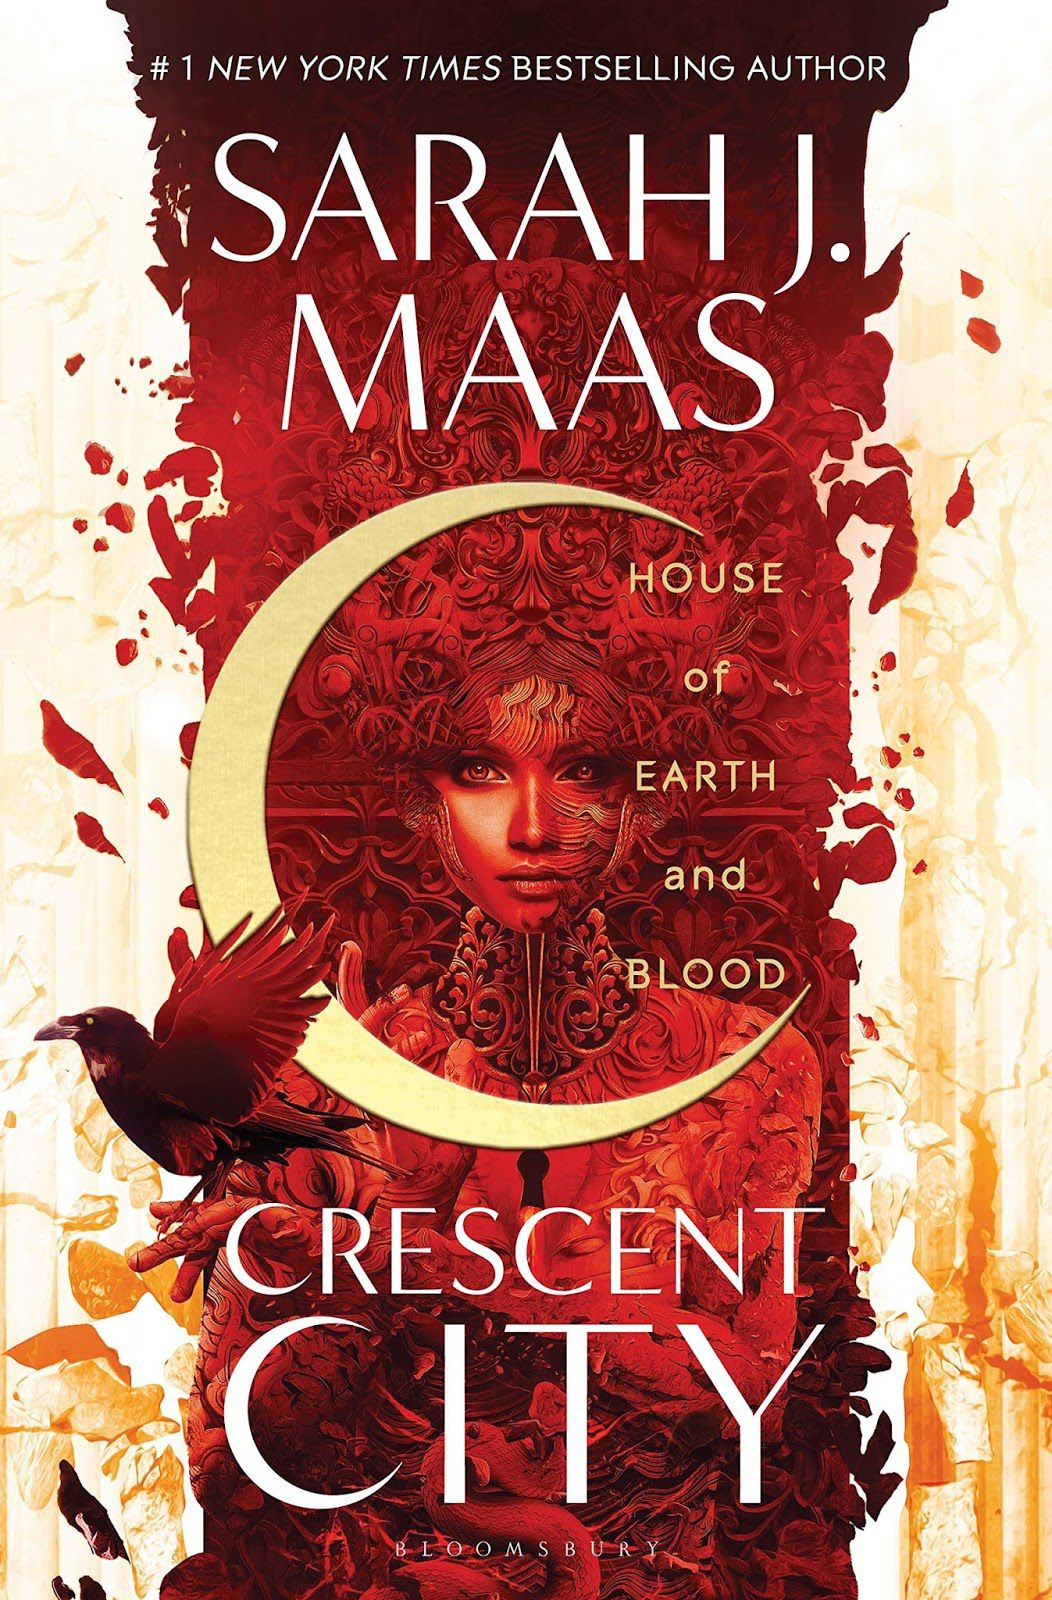 """Sarah J. Maas' debut adult book, """"Crescent City: House of Earth and Blood,"""" comes out Tuesday."""